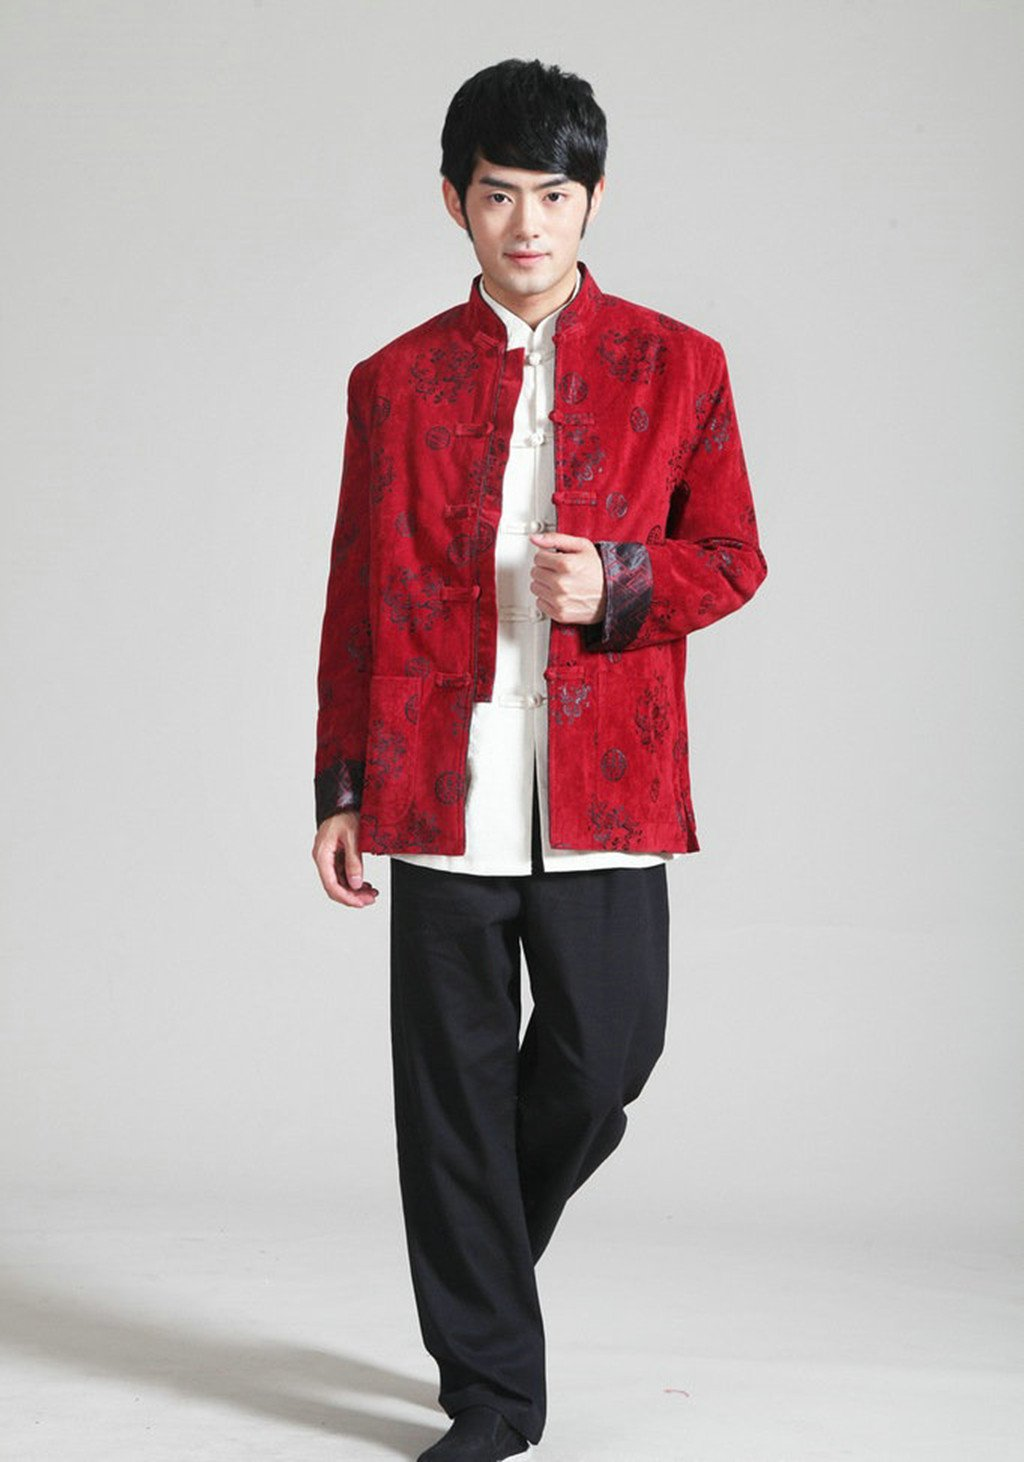 Wool Tang Suits Retro Jackets cotton-padded jacket Business Jackets Full Dress by Winter Tang Suit (Image #5)